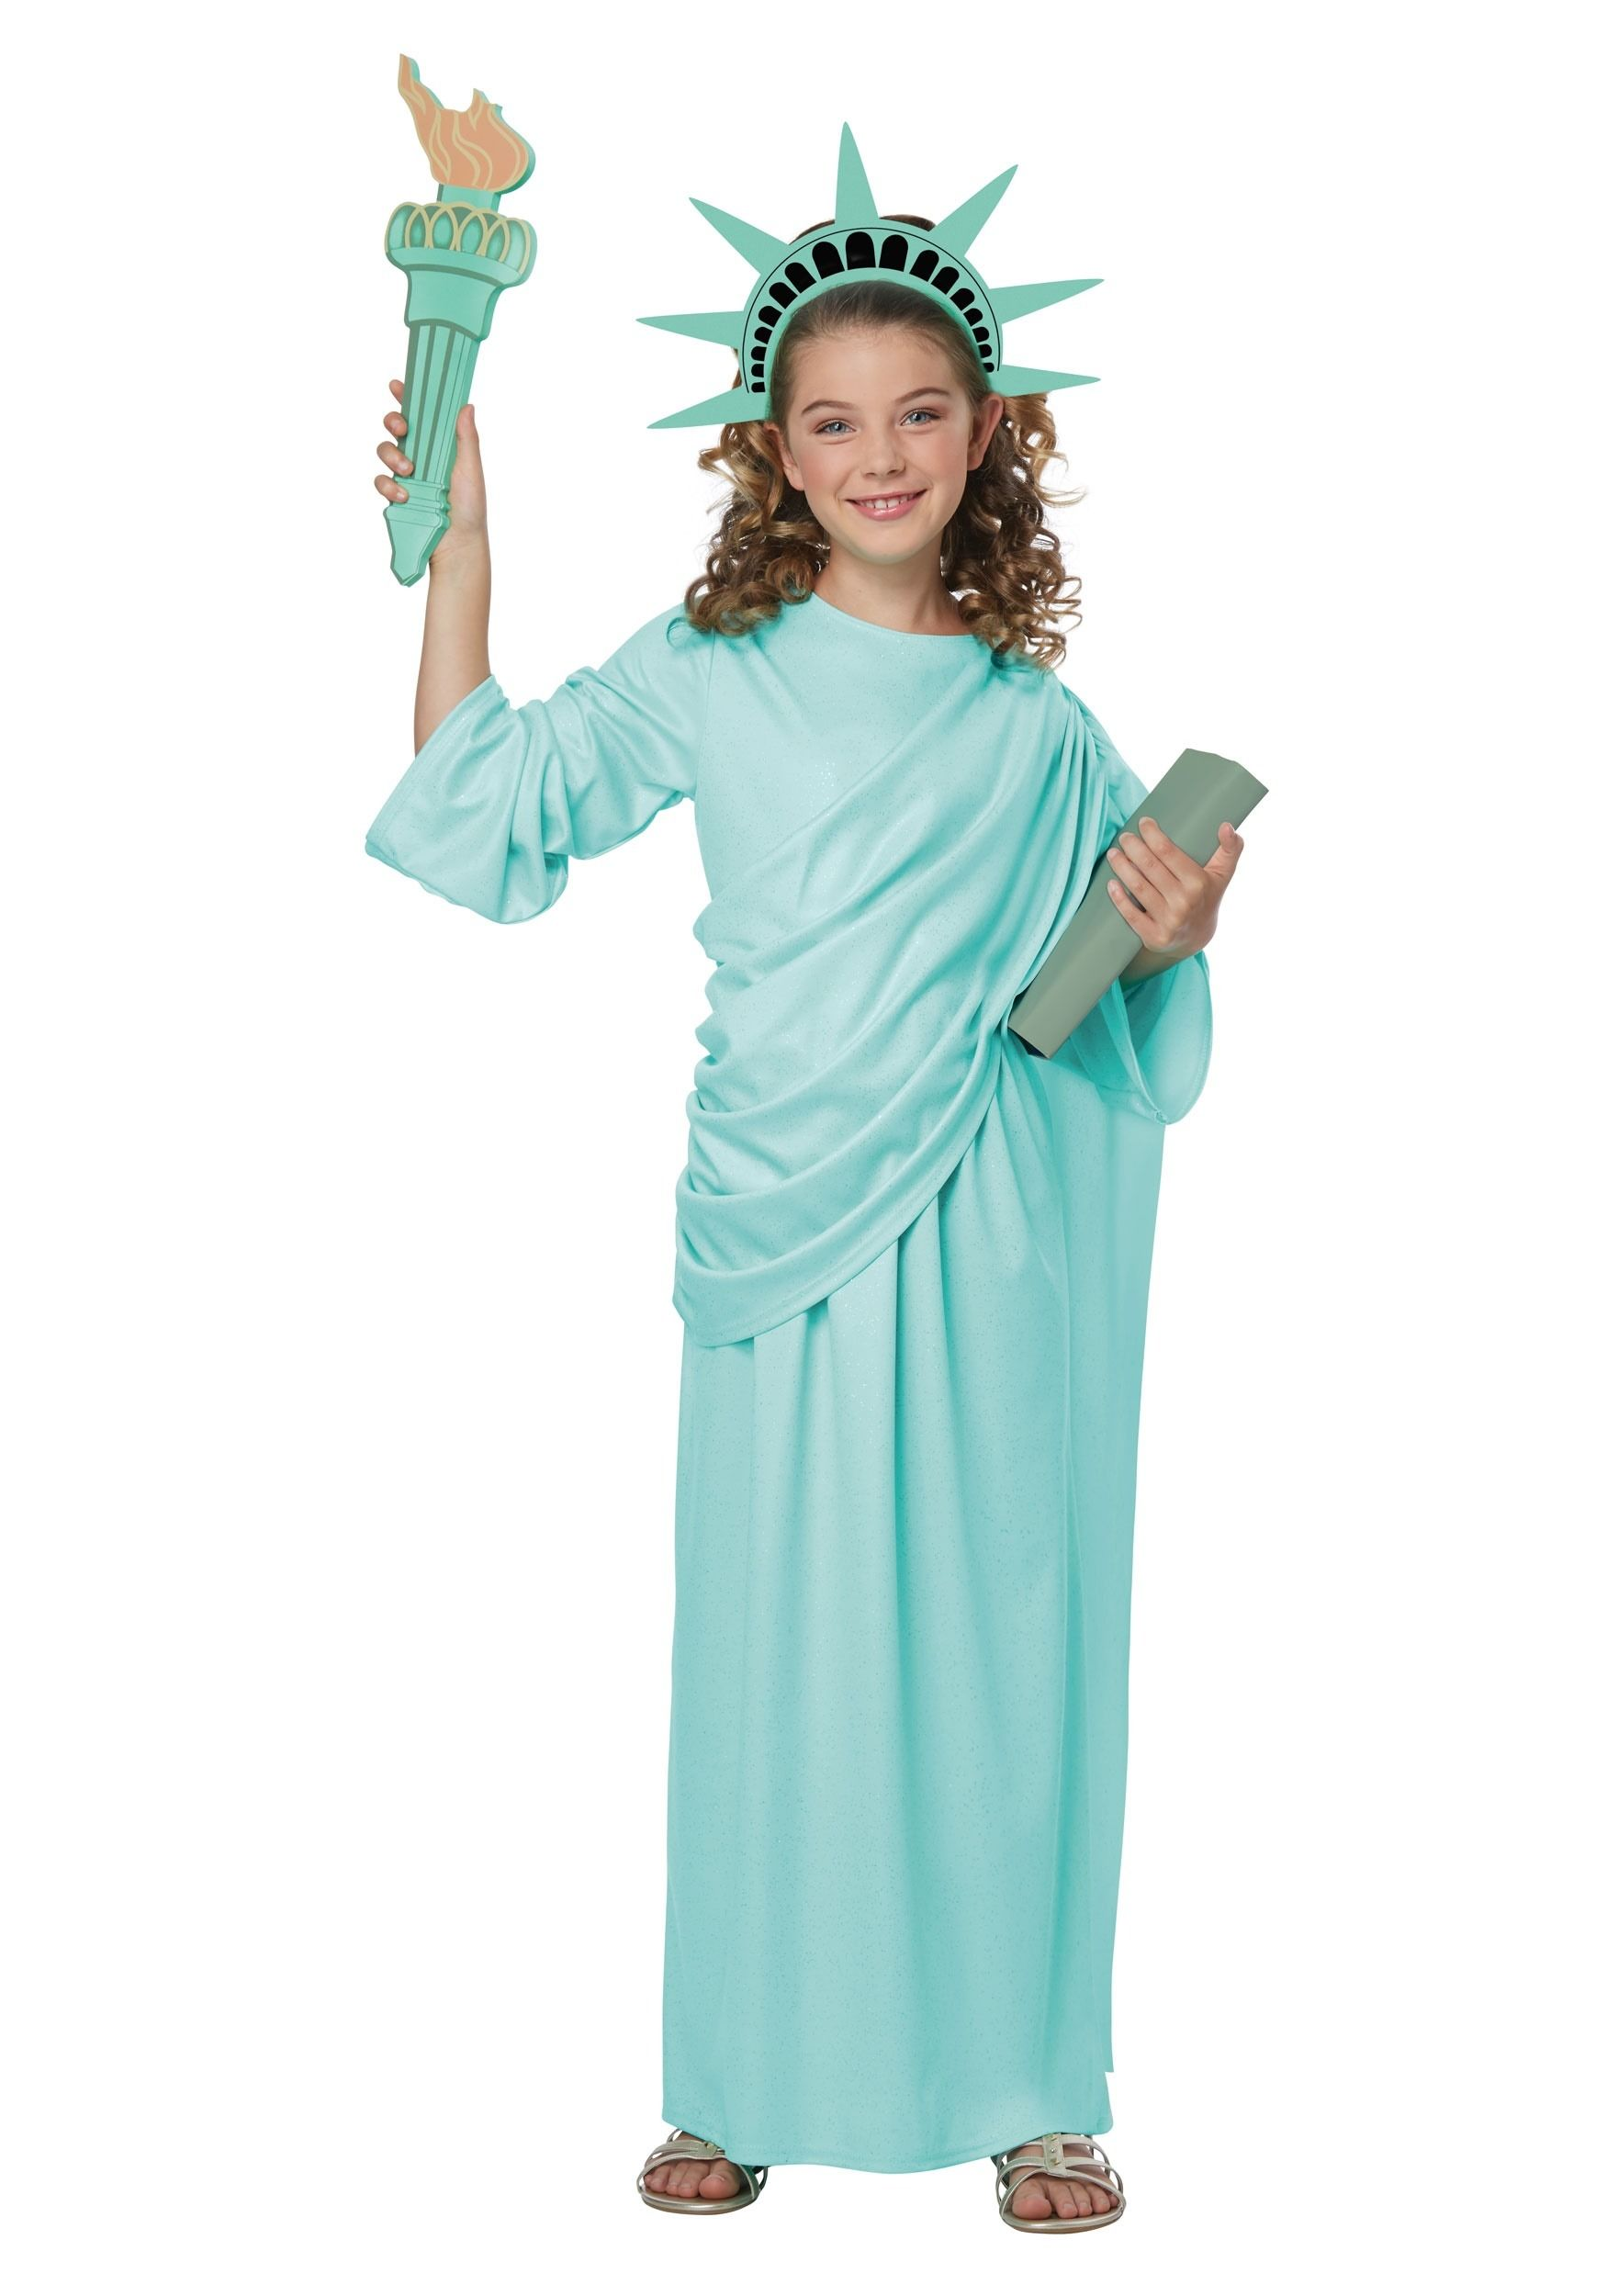 Girls Statue Of Liberty Costume Lady Liberty Costume Fancy Dress Costumes Halloween Costumes For Kids